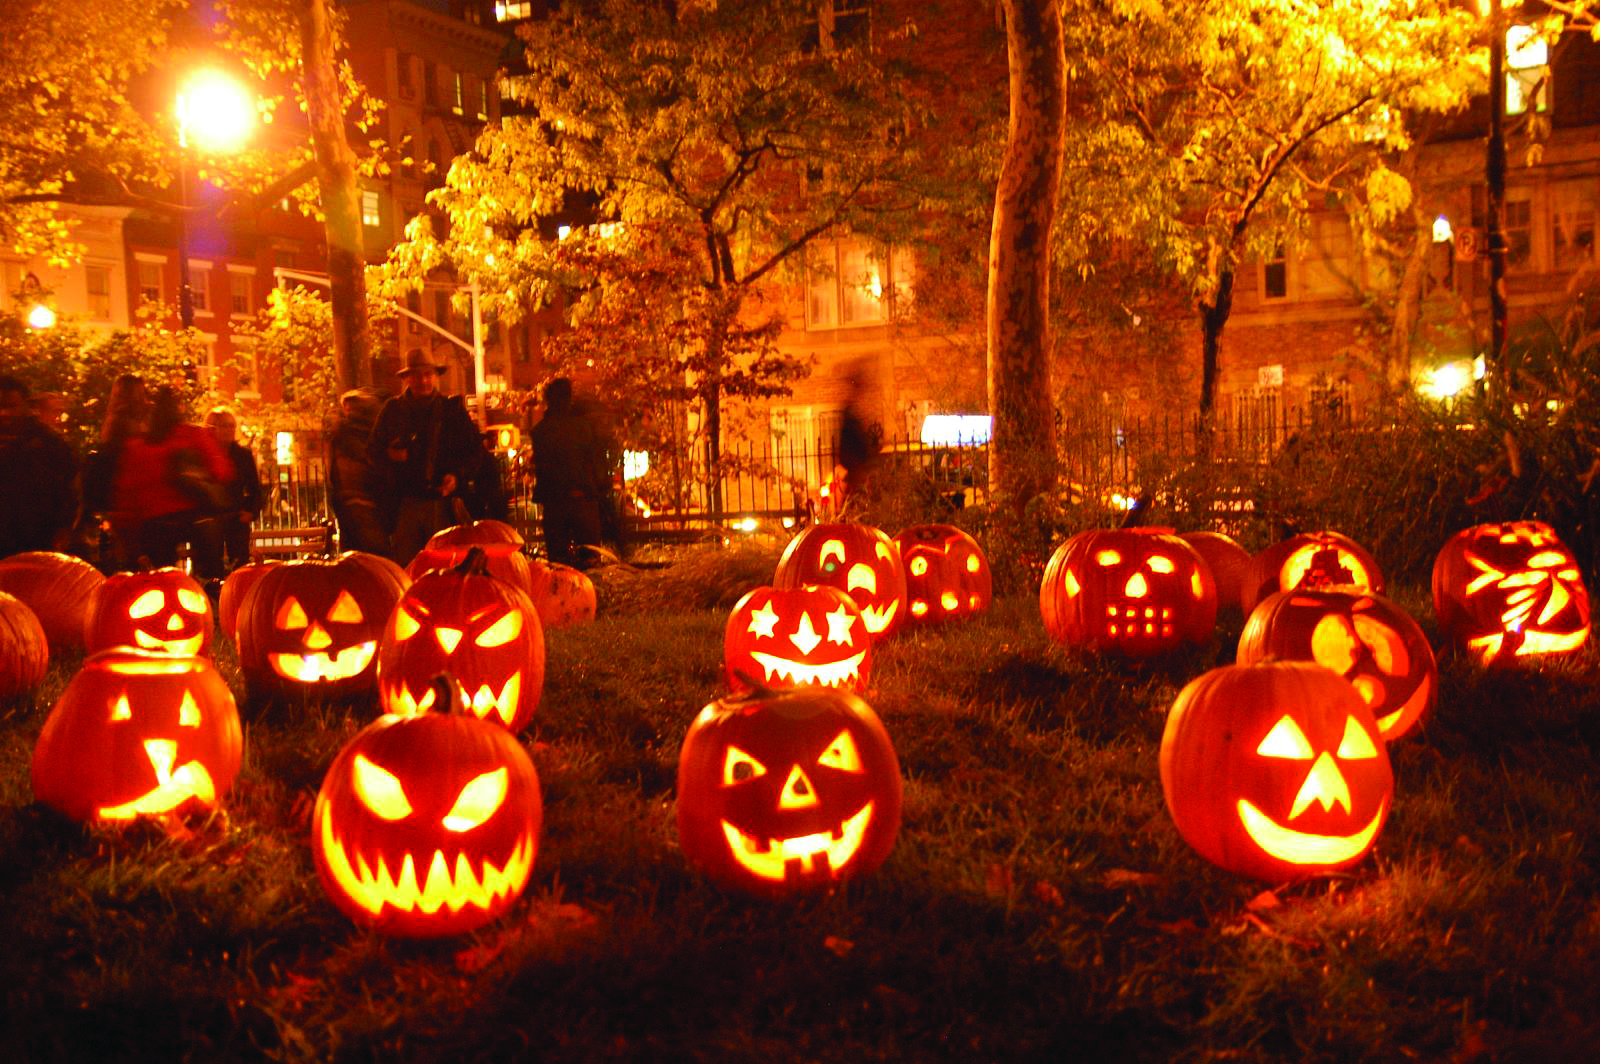 FUNDAY FRIDAY TODAY! Starts after 5:30pm class. Pumpkin carving, food, drinks, games. Be here !